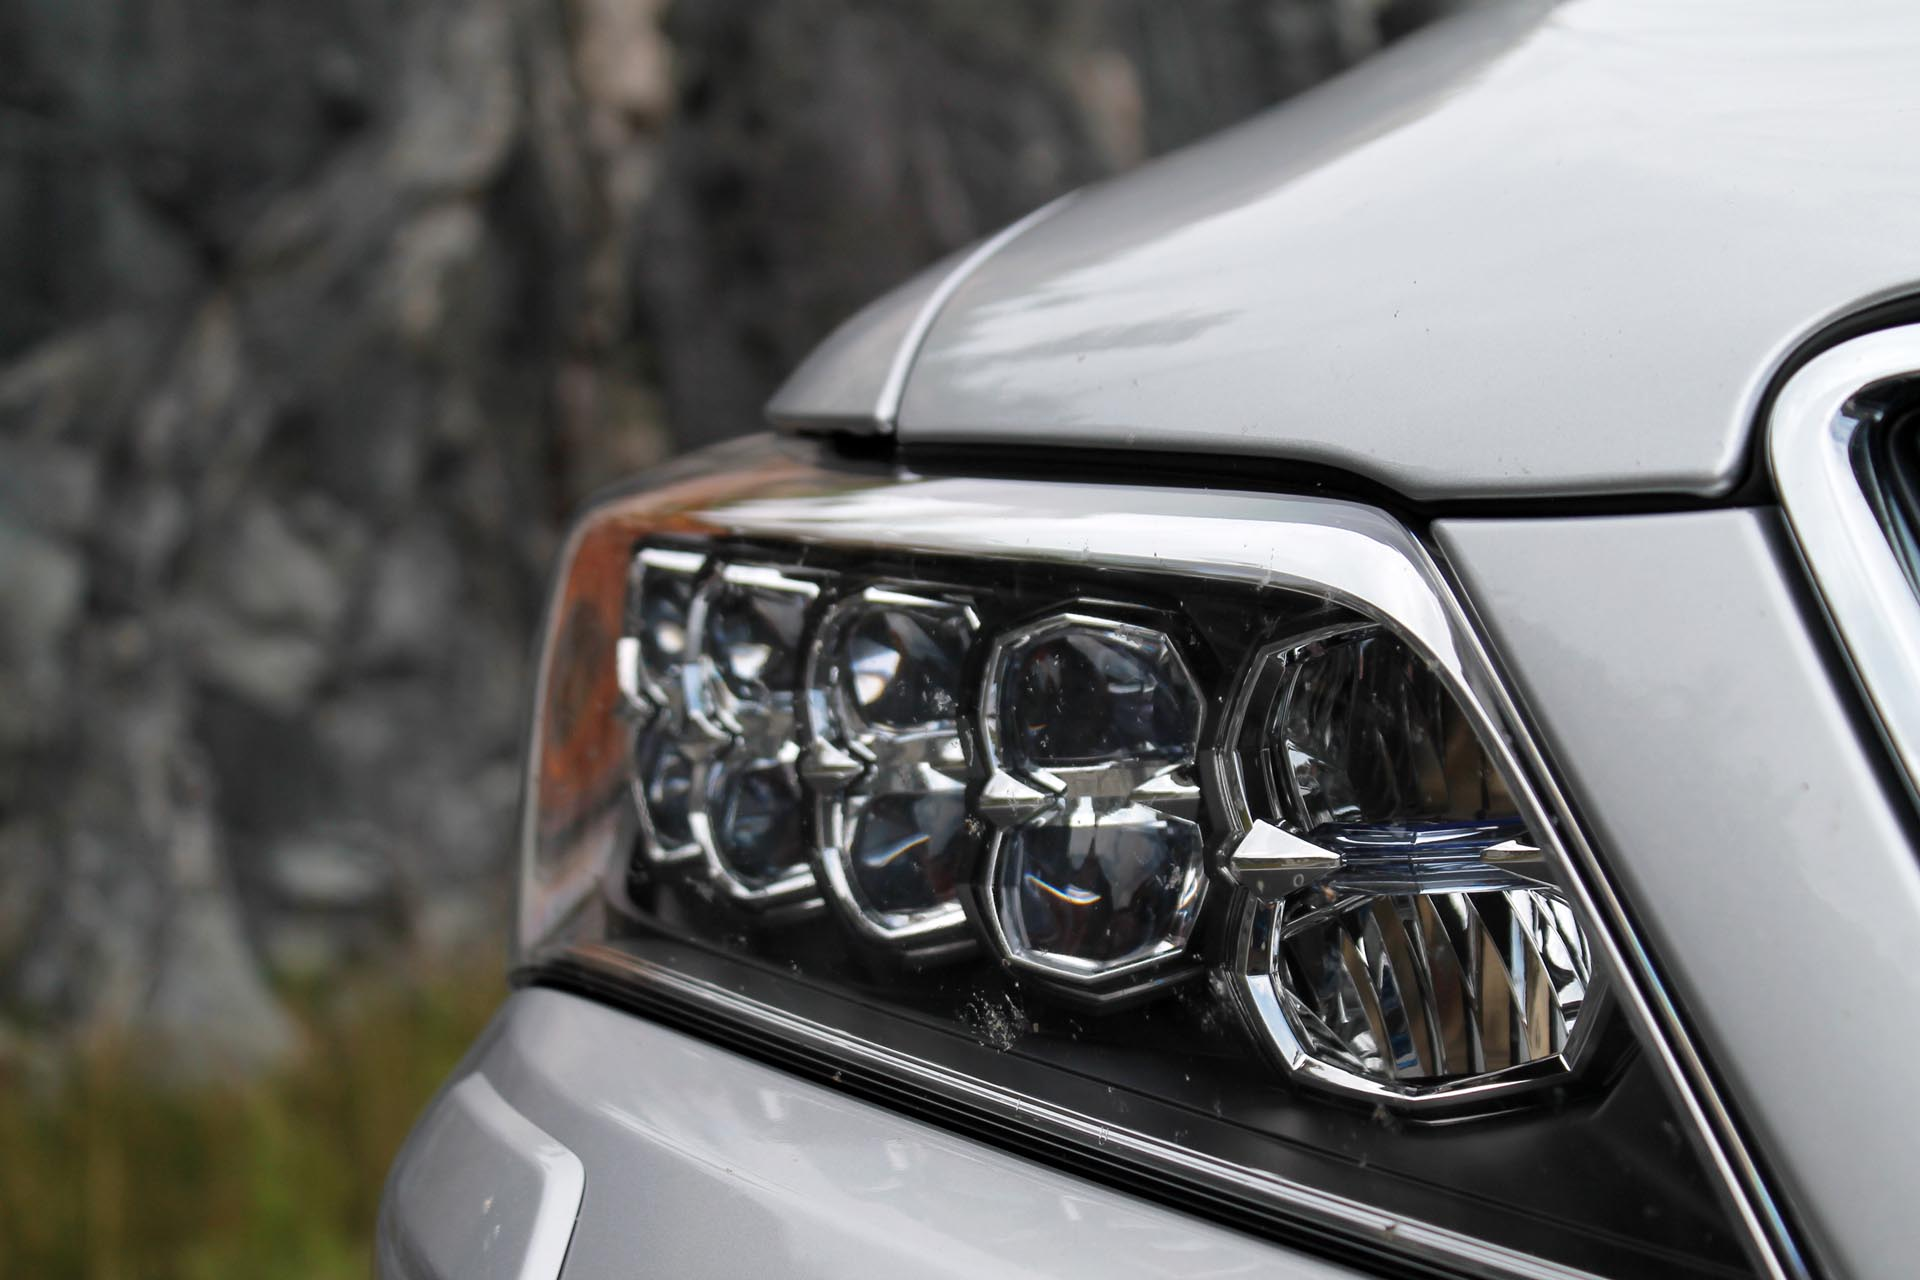 """Here's a new Acura, and its signature """"Jewel Eye"""" headlamps. Using LED technology, the automaker has created a unique looking headlight that turns heads while offering great forward illumination in the process. Each square-shaped segment houses a powerful LED cluster inside."""